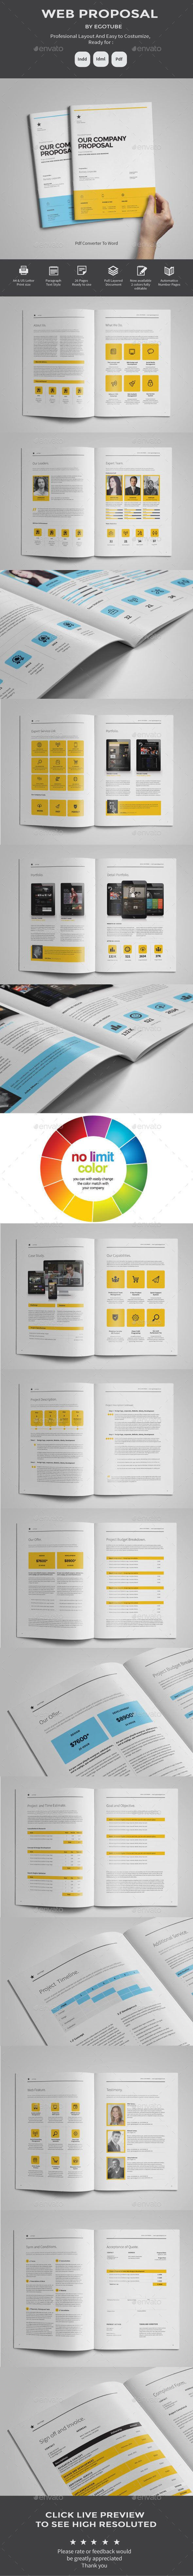 Project Proposal Template InDesign INDD. Download here: http://graphicriver.net/item/project-proposal/14823059?ref=ksioks